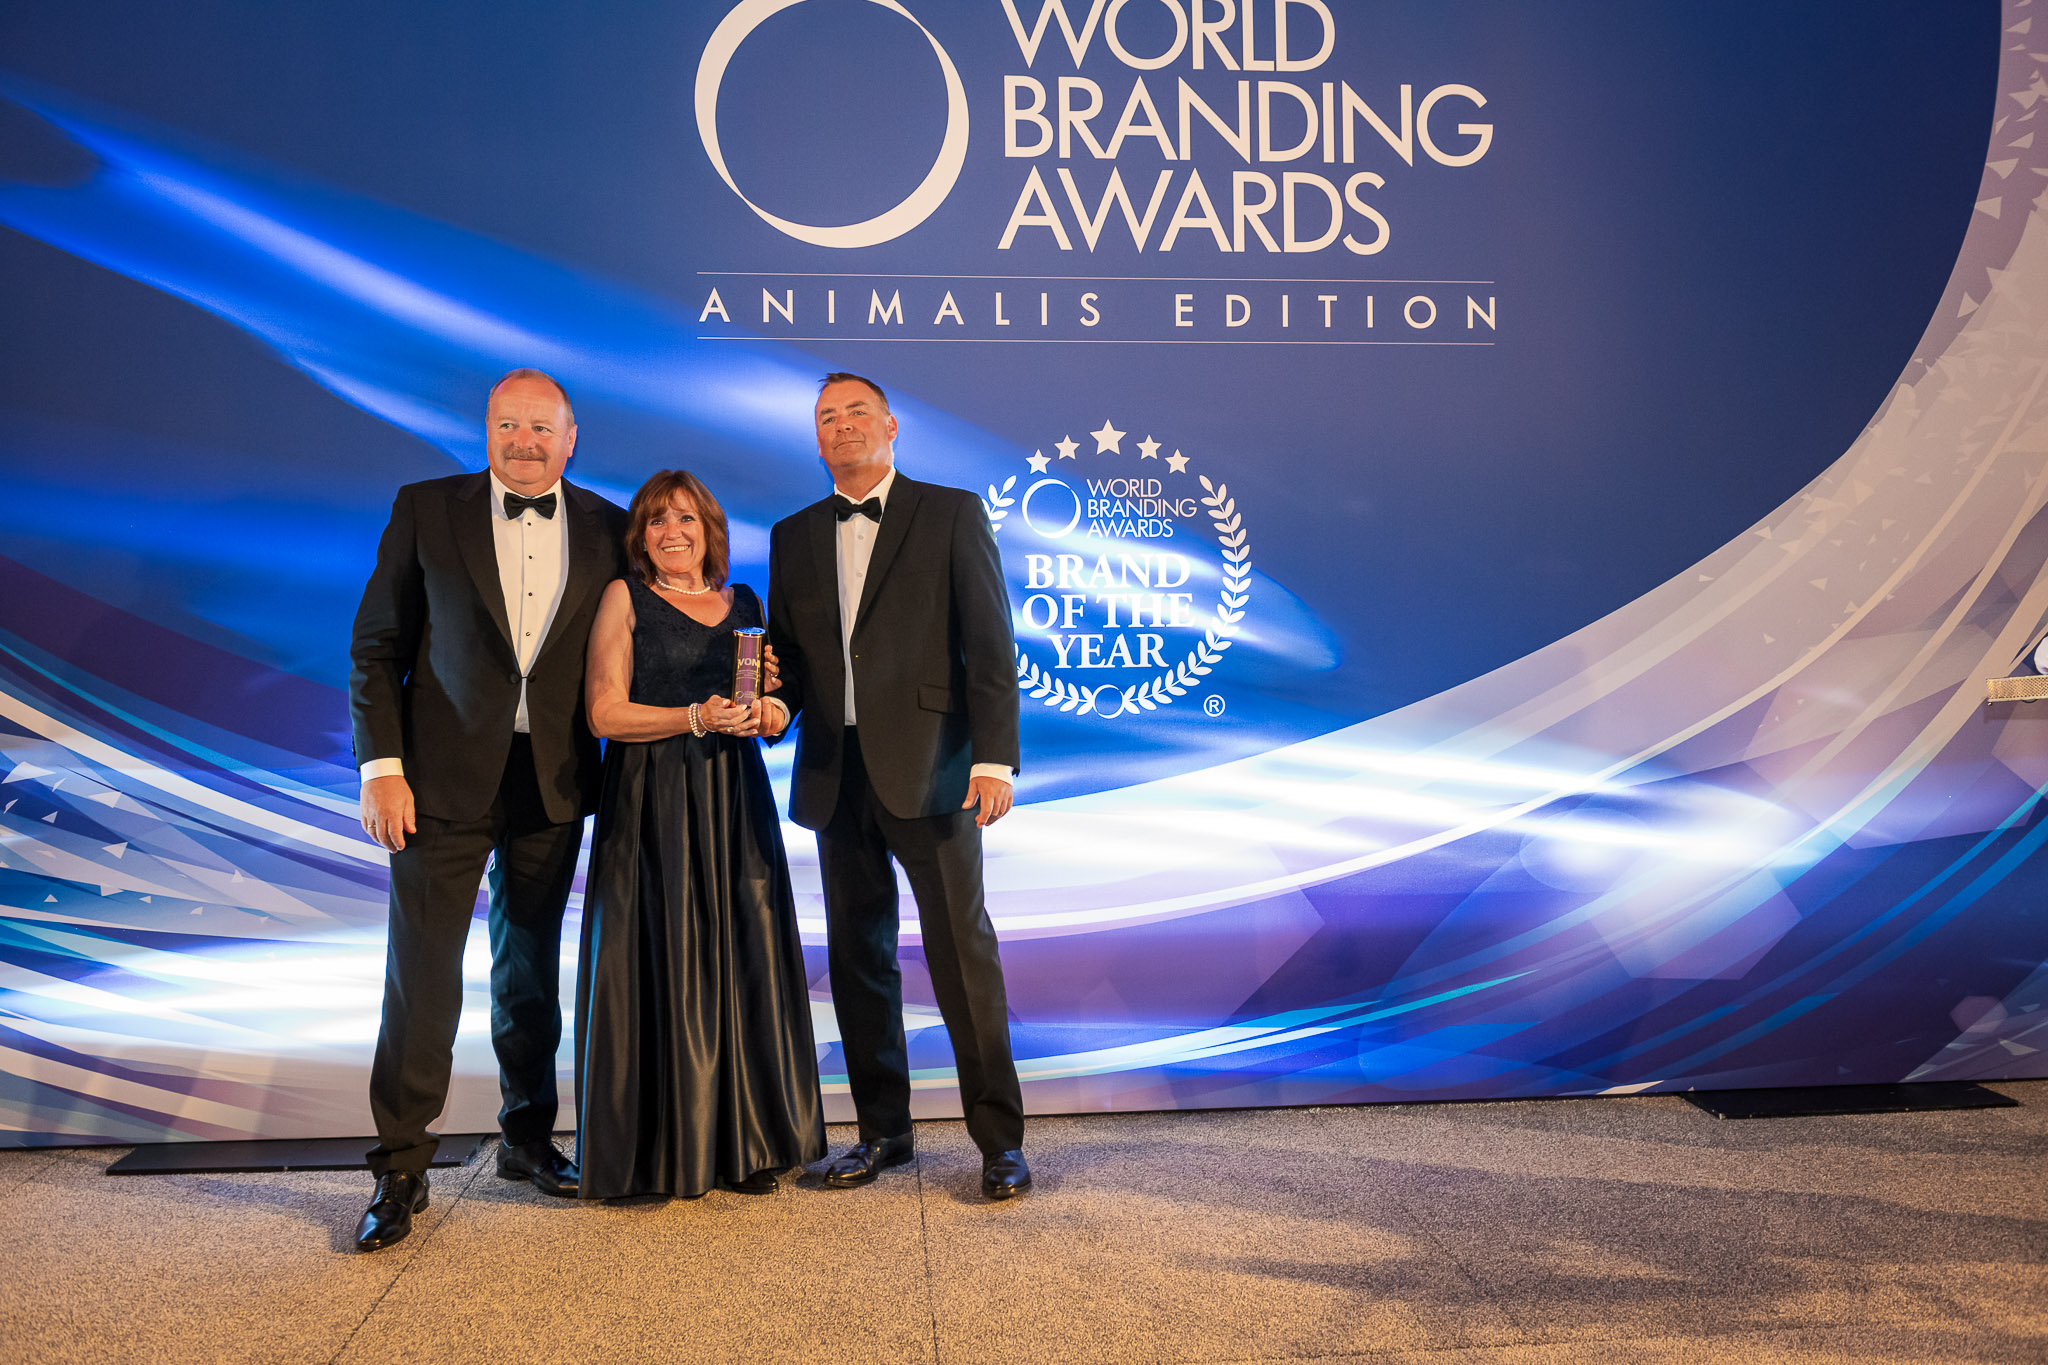 20190703_224008_world_branding_awards_animalis_7959